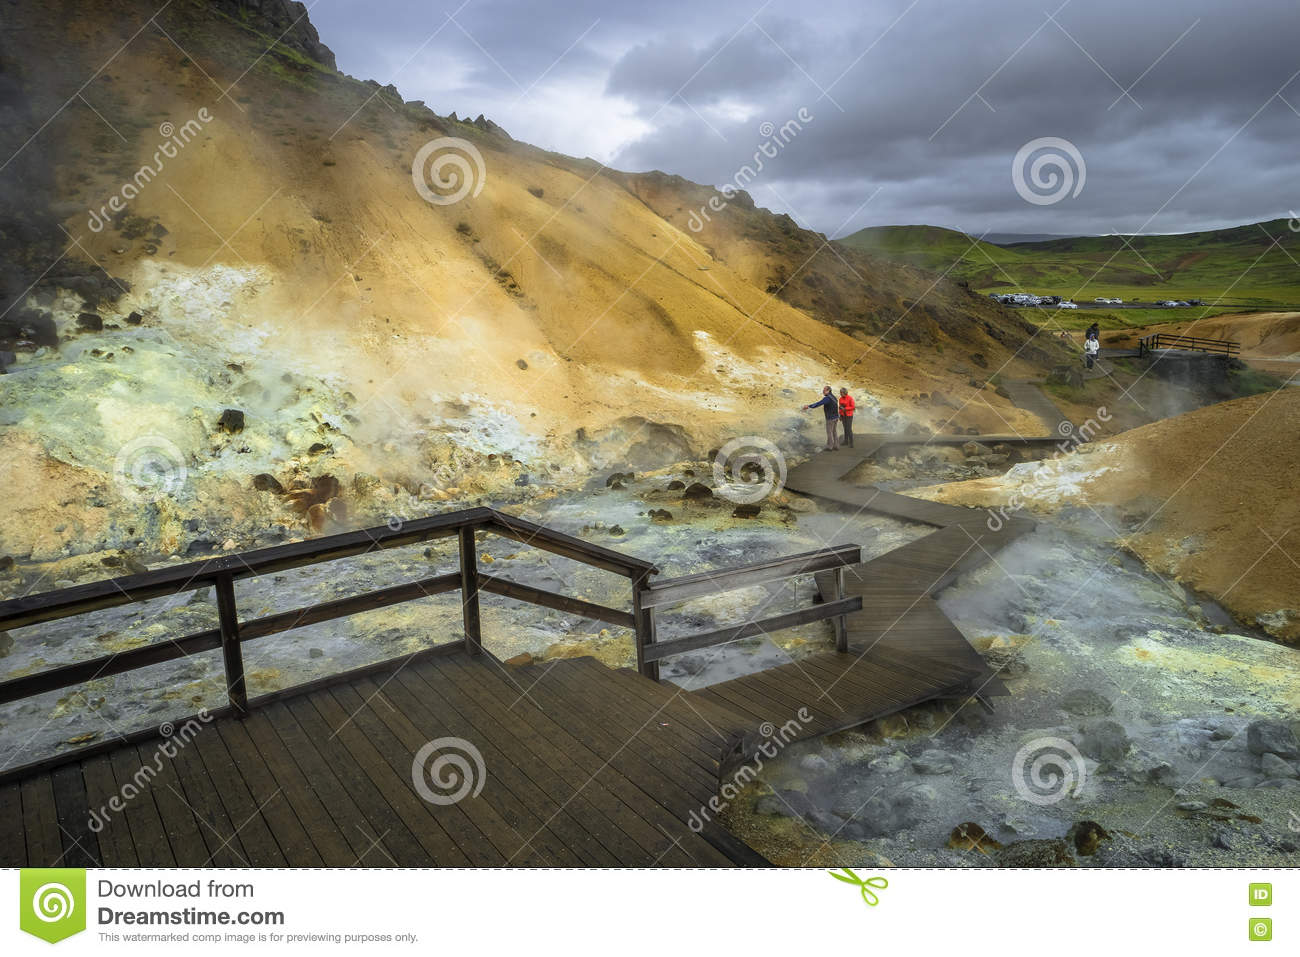 Geothermal area with hot springs on Iceland, summer